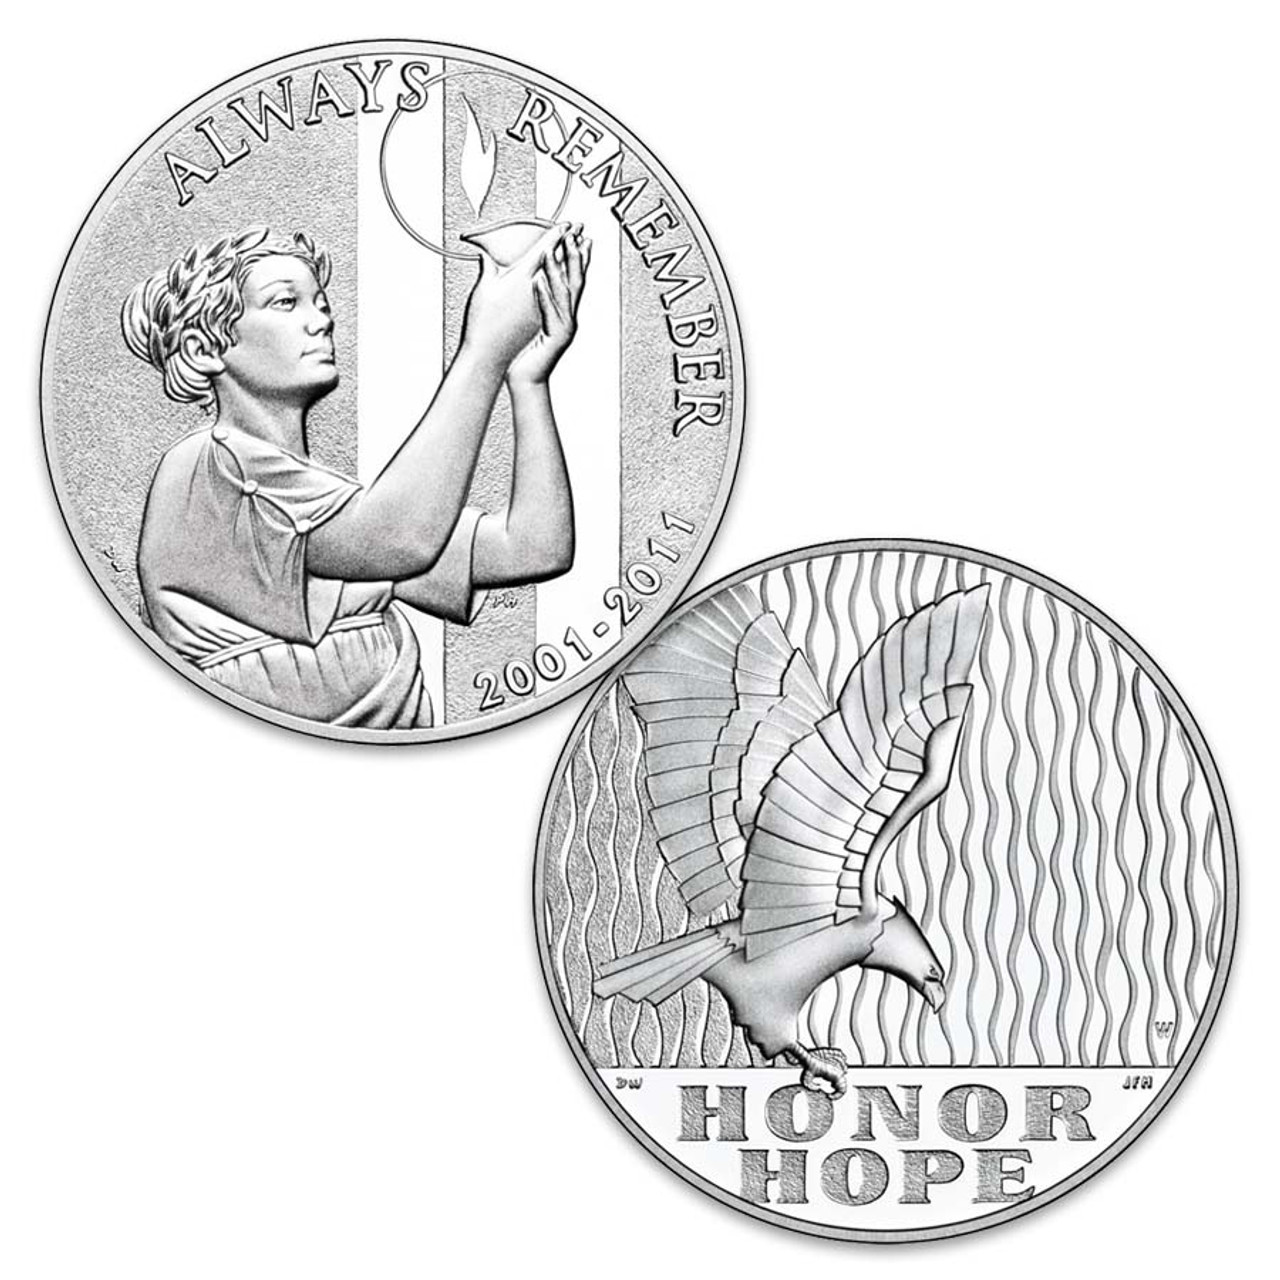 2011 U.S. Mint 9/11 Tenth Anniversary 1-Oz. Silver National Medal Image 1